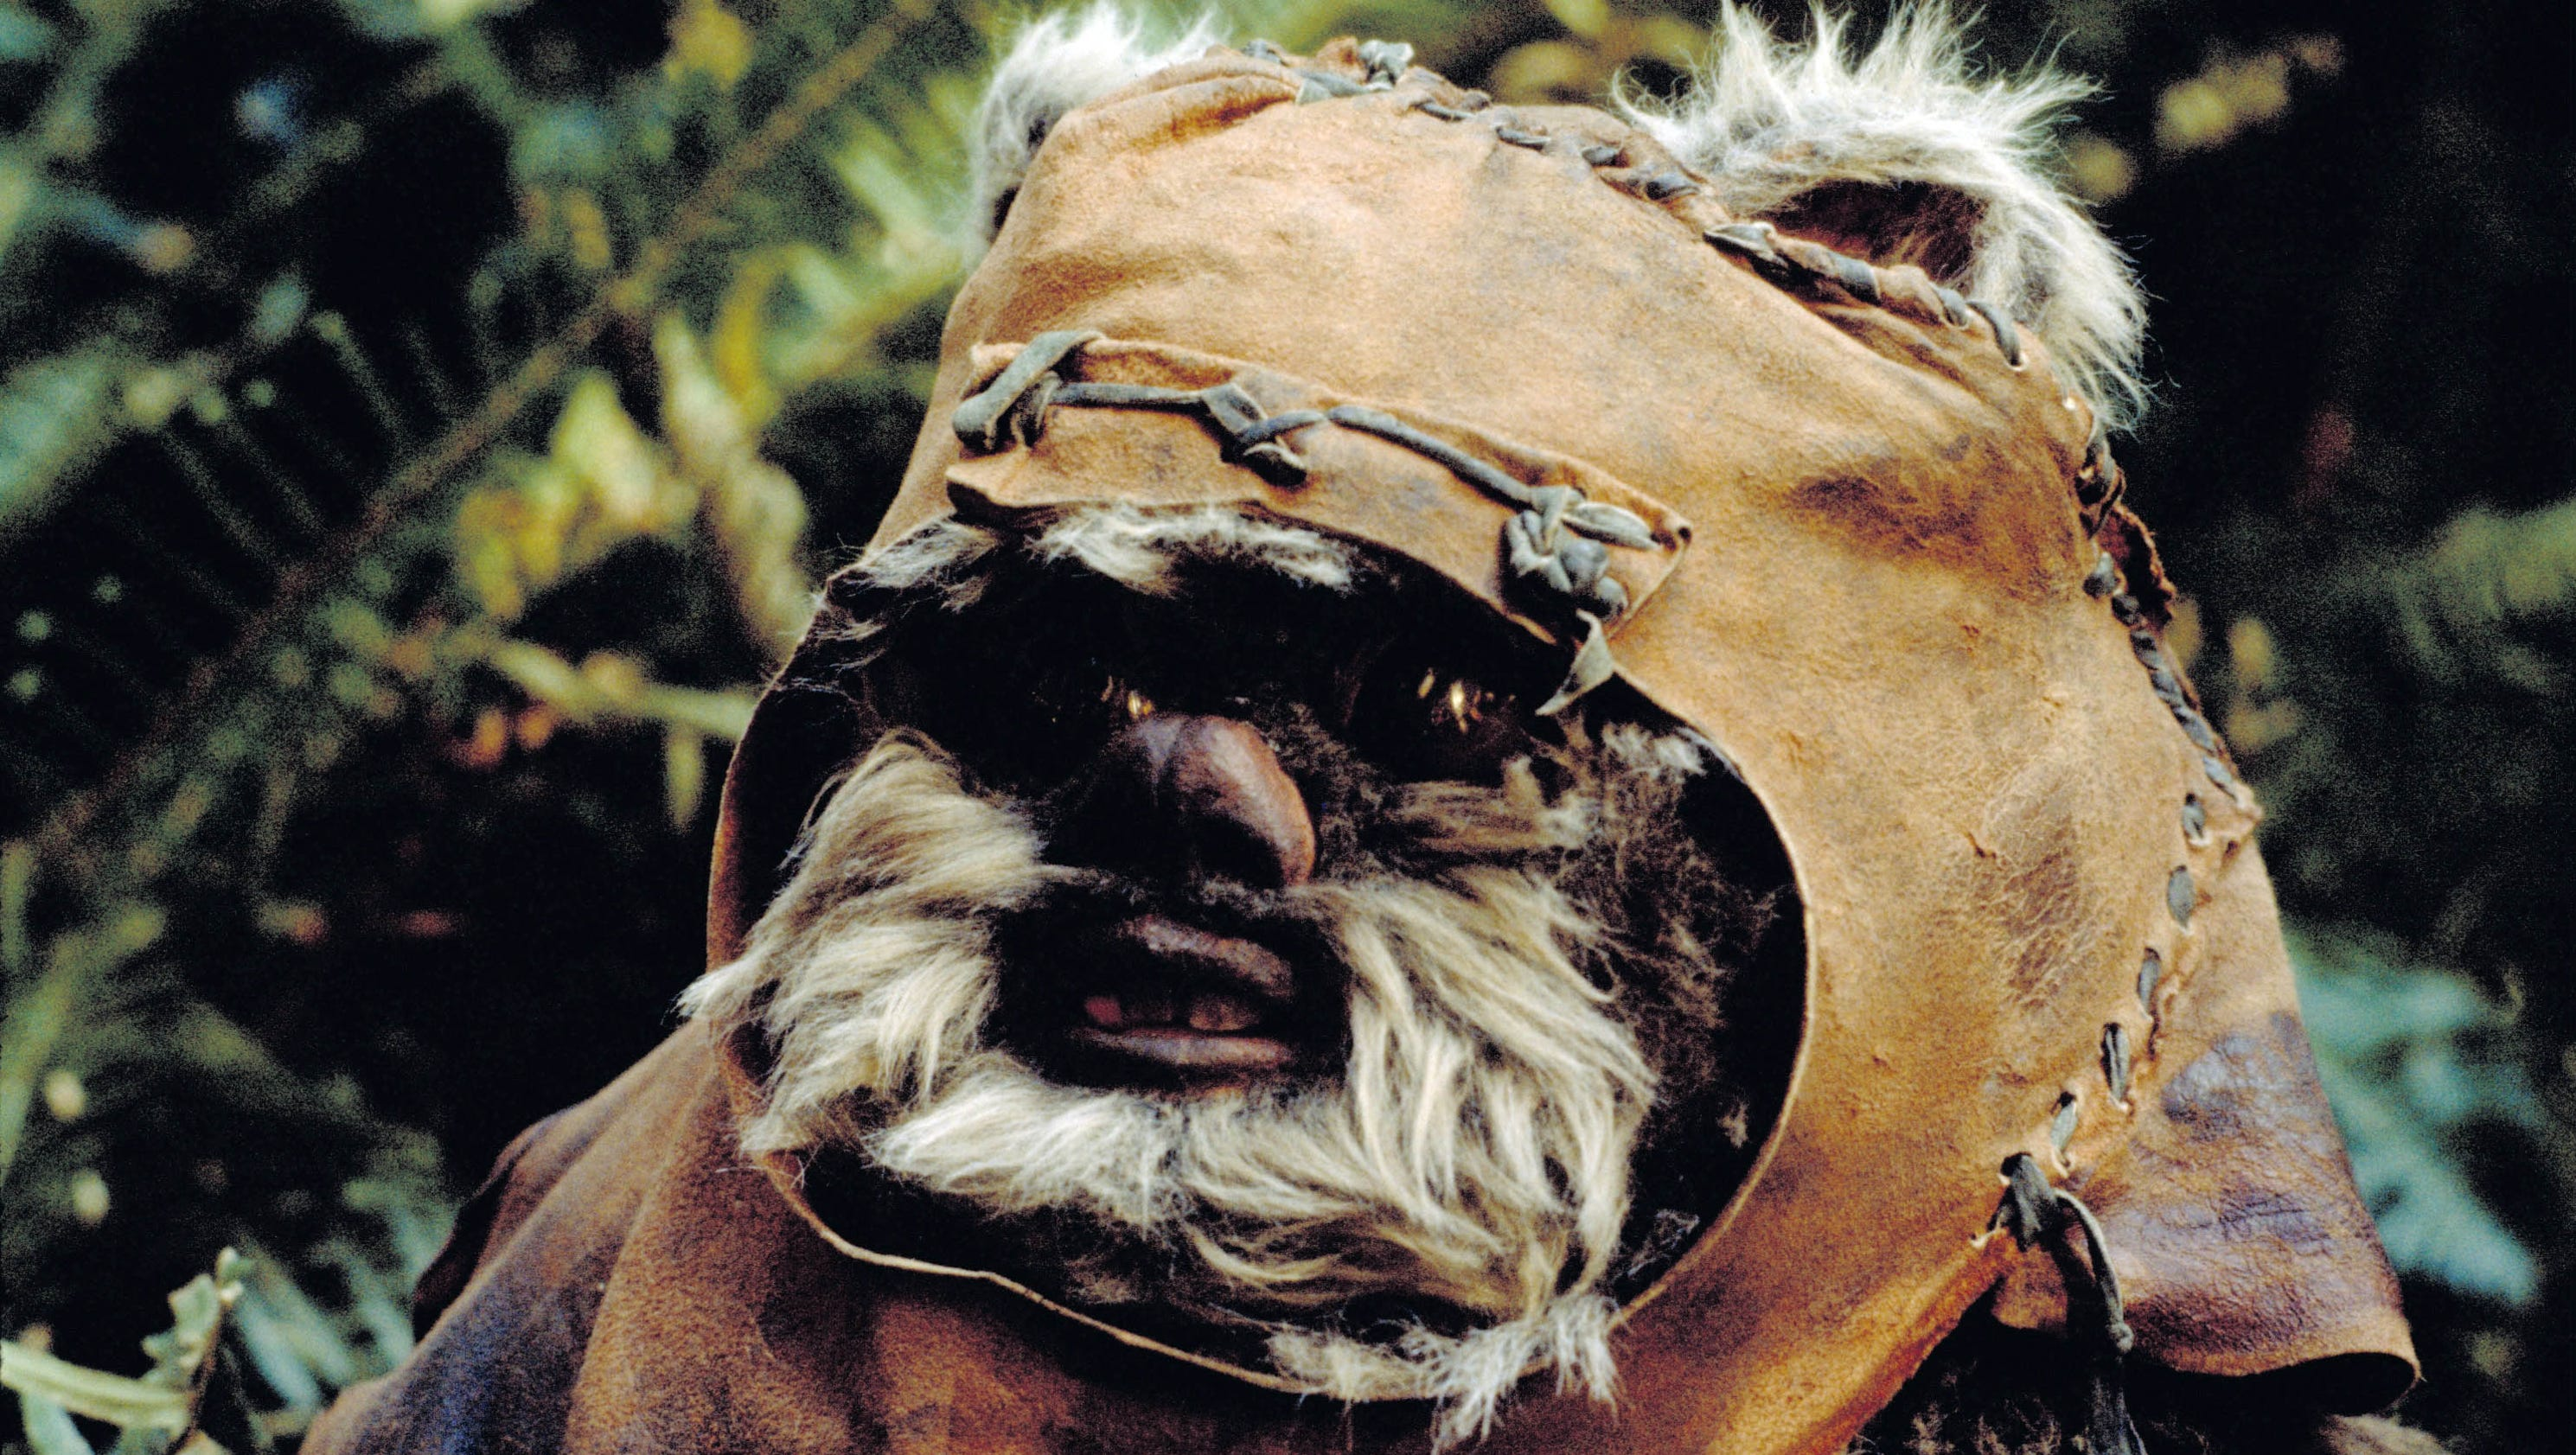 Ewoks And Jar Jar Binks Are Officially Not In 'Star Wars